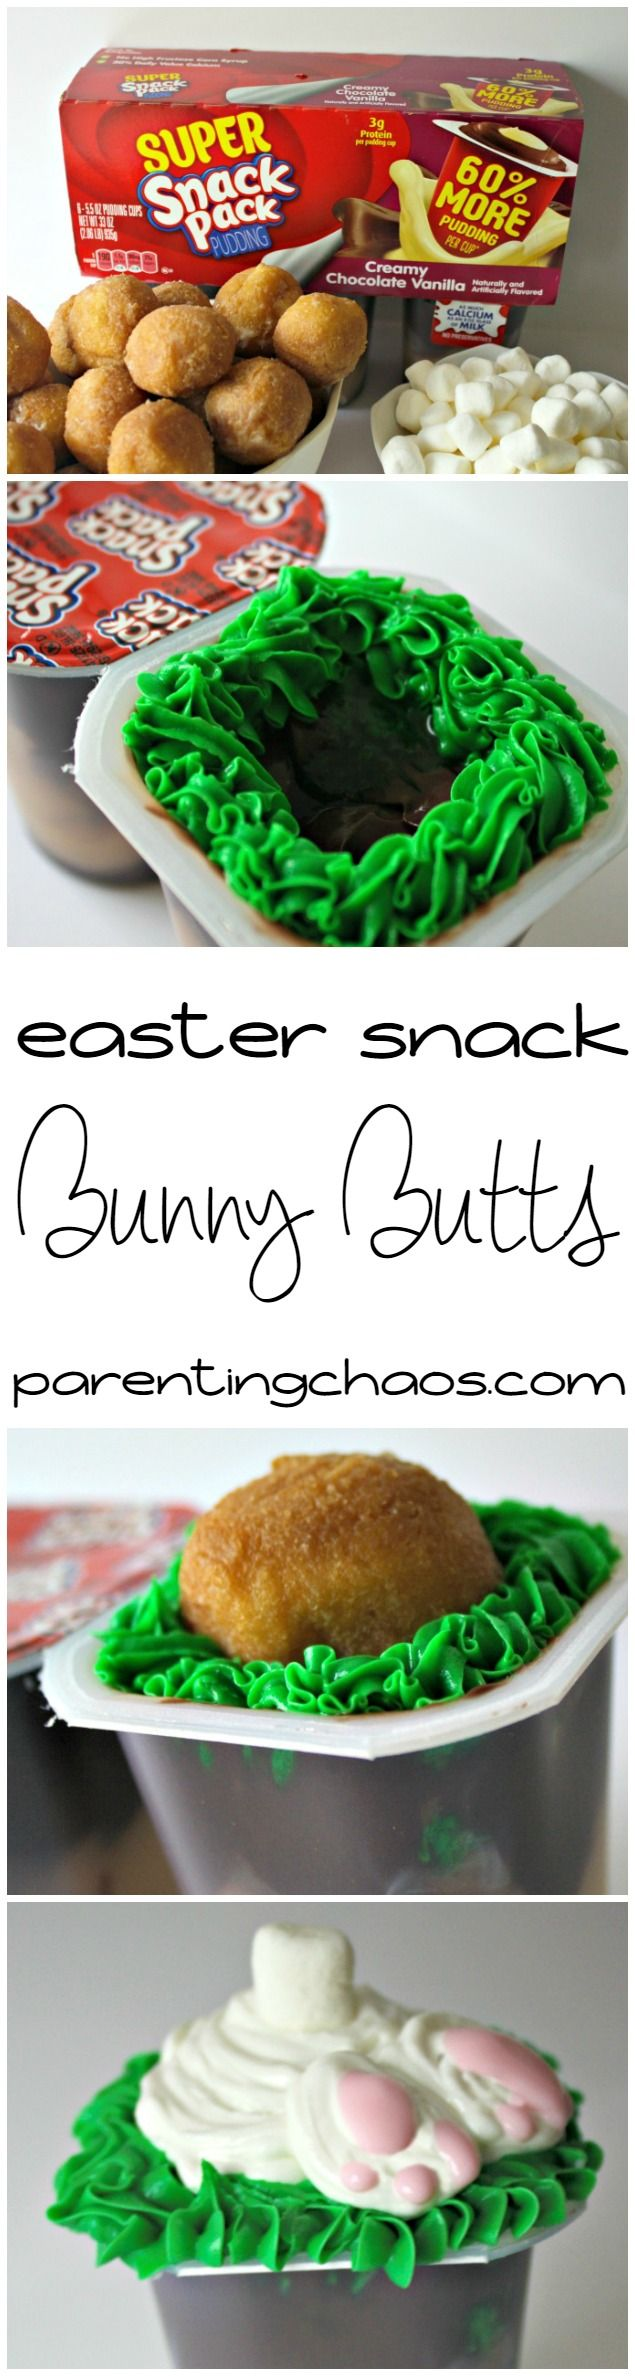 Bunny Butts Easter Snack! #SnackPackMixins #CollectiveBias #ad